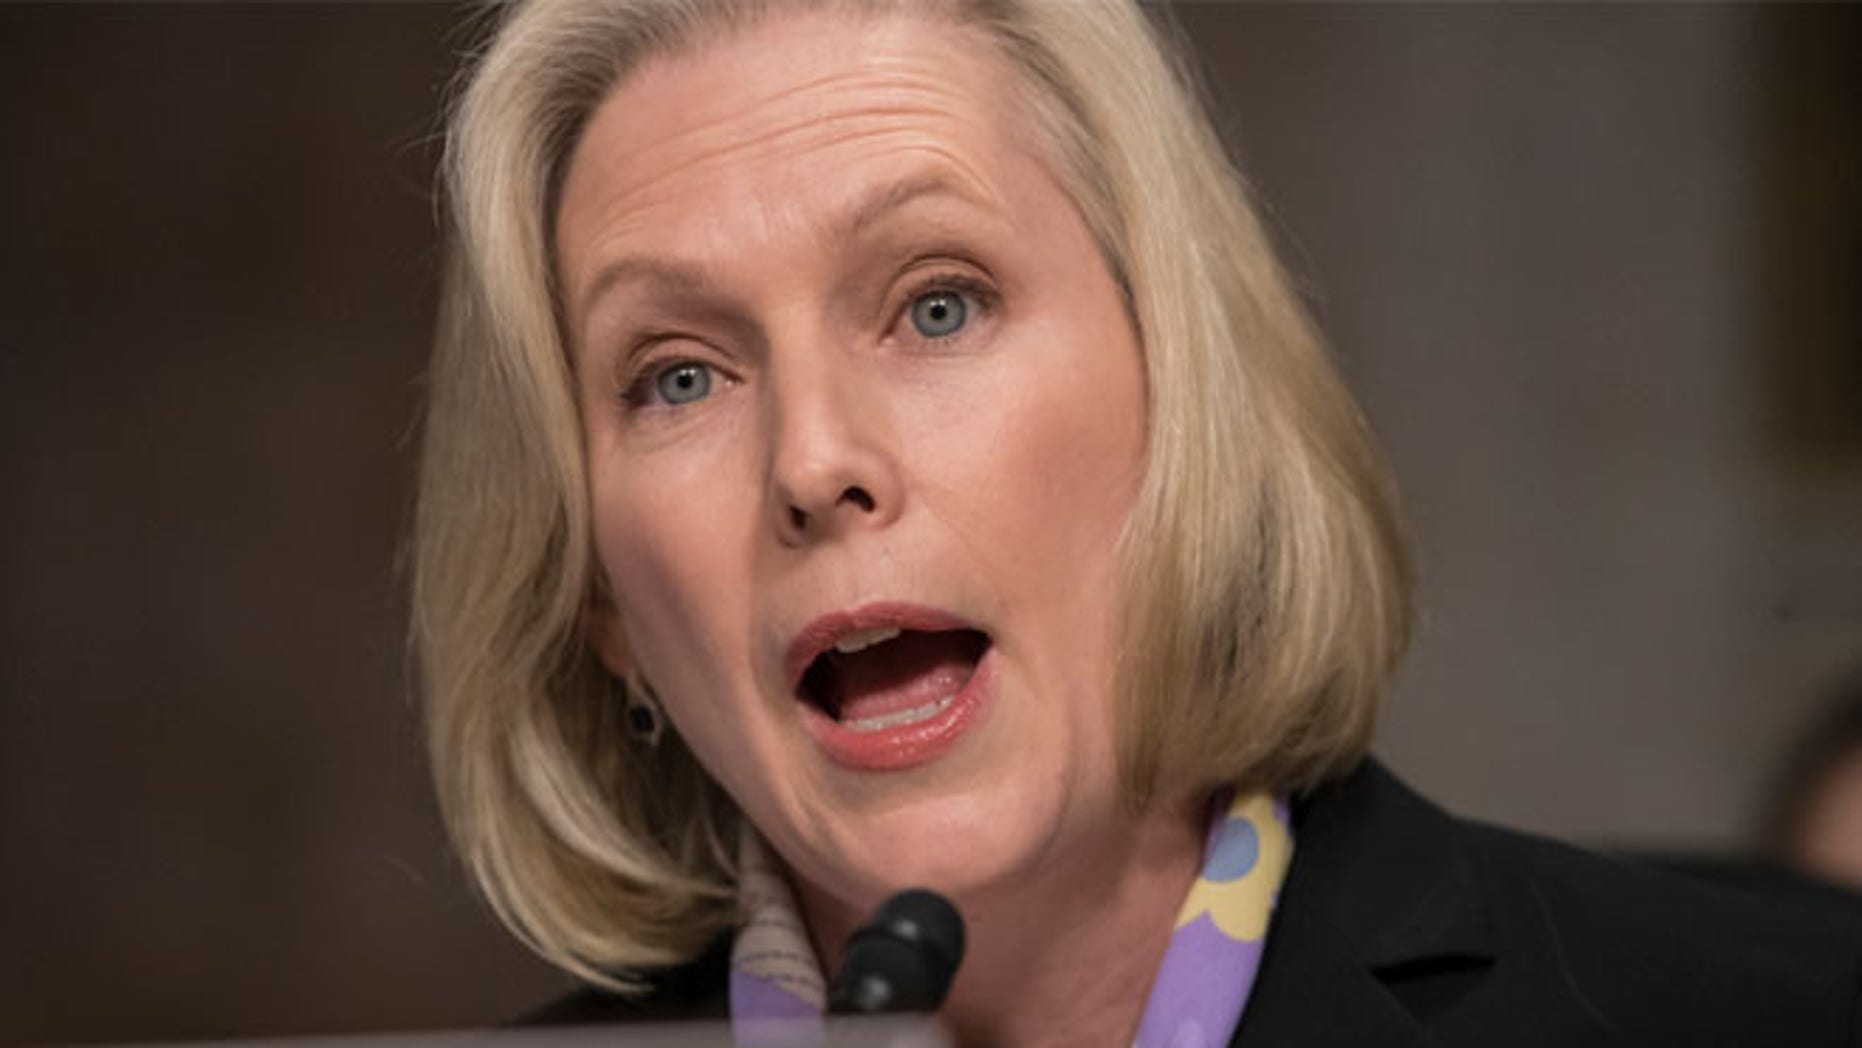 New York's Kirsten Gillibrand predicted that President Trump's pick for Supreme Court will be confirmed.